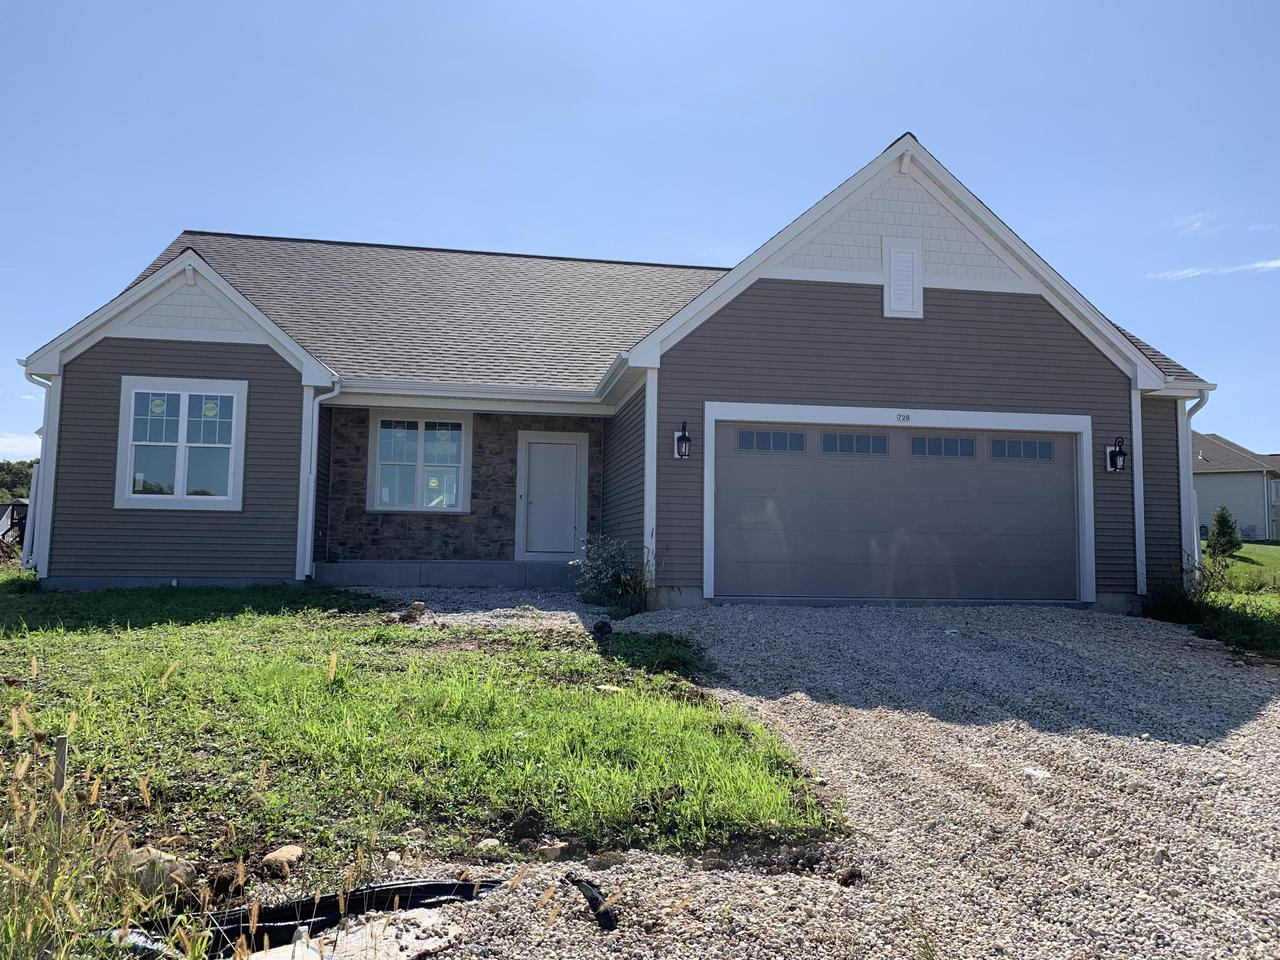 NEW CONSTRUCTION by Stepping Stone Homes. $2500 buyer closing cost credit OR credit towards a patio/deck for an accepted offer by 10/31! This AVERY model is located in Autumn Ridge. Open concept w/full basement including egress window. Superior quality, 2x6 exterior framing, 8 foot garage door, electric fireplace and more! Lots of upgrades like soft close dovetail cabinetry, quartz/marble counter tops, double sinks in  bathrooms, upgraded flooring throughout and so much more. Don't forget about all the Smart Home Technology, including integrated lighting, door locks, ecobee thermostat, video door bell, Lift Master garage door opener, Samsung Connected Touch Screen Family Hub refrigerator, all of which you can control from your phone! Concrete driveway and seeded lawn INCLUDED IN THE PRIC